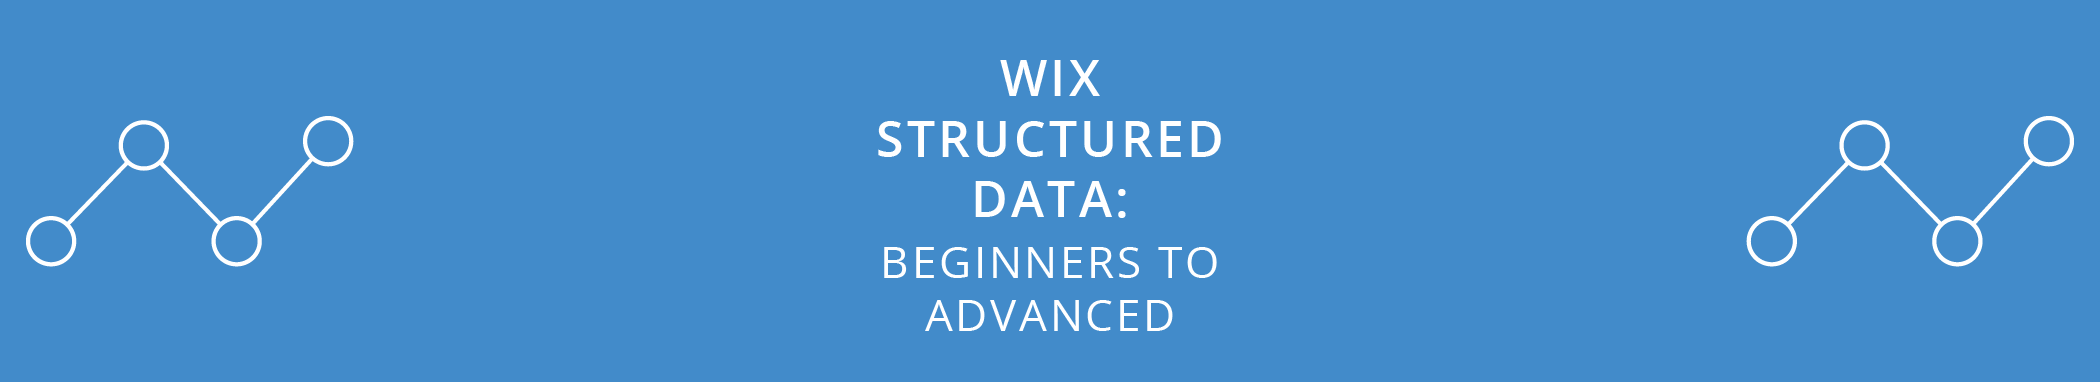 Adding Structured Data in Wix